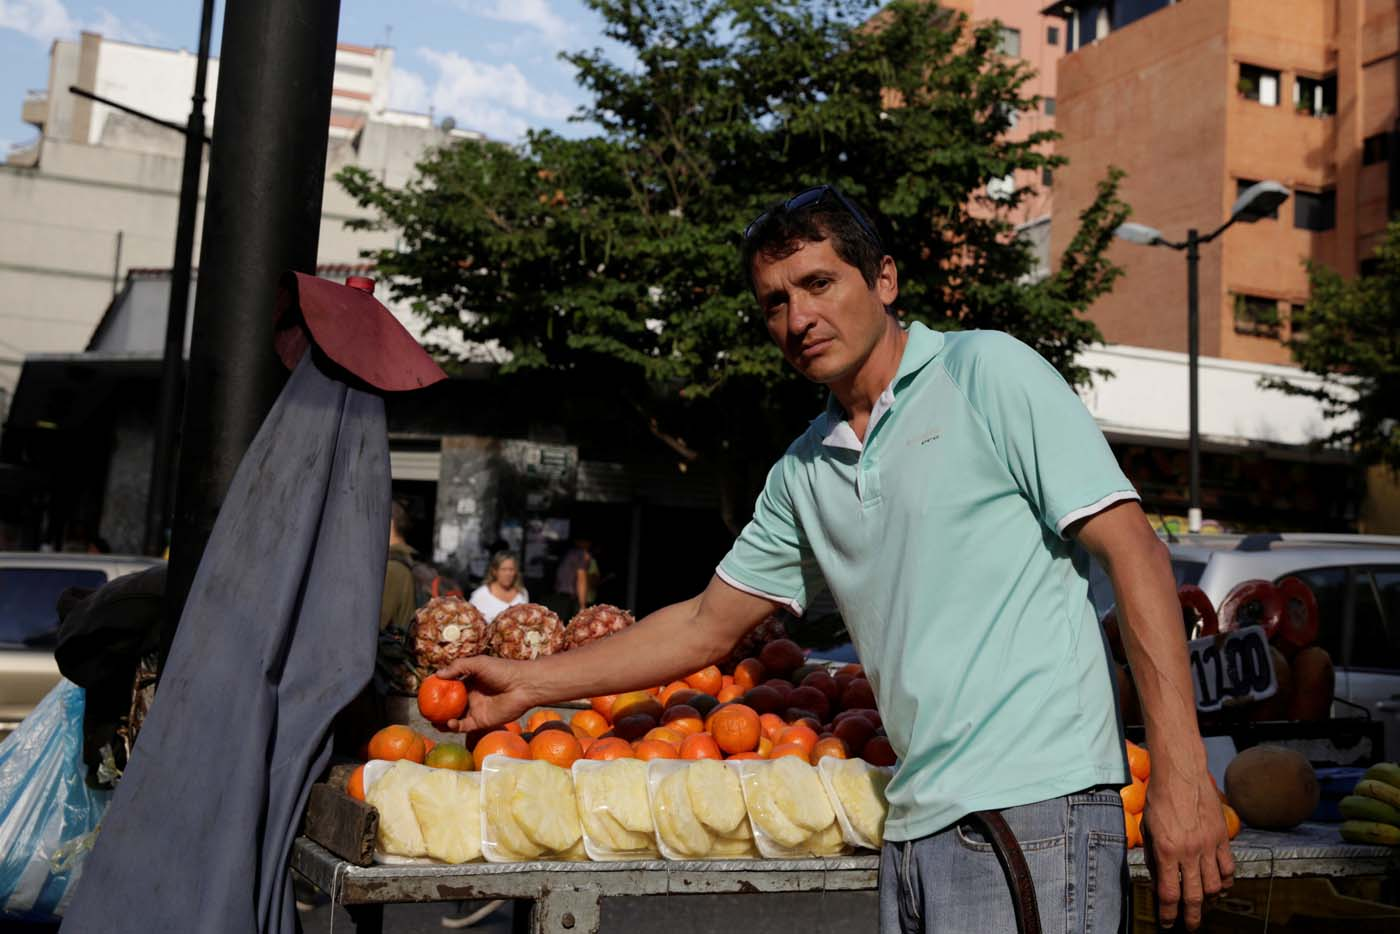 Jesus Pena sells fruits at his stall in a street of Chacao, in Caracas, Venezuela February 24, 2017. Picture taken February 24, 2017. REUTERS/Marco Bello